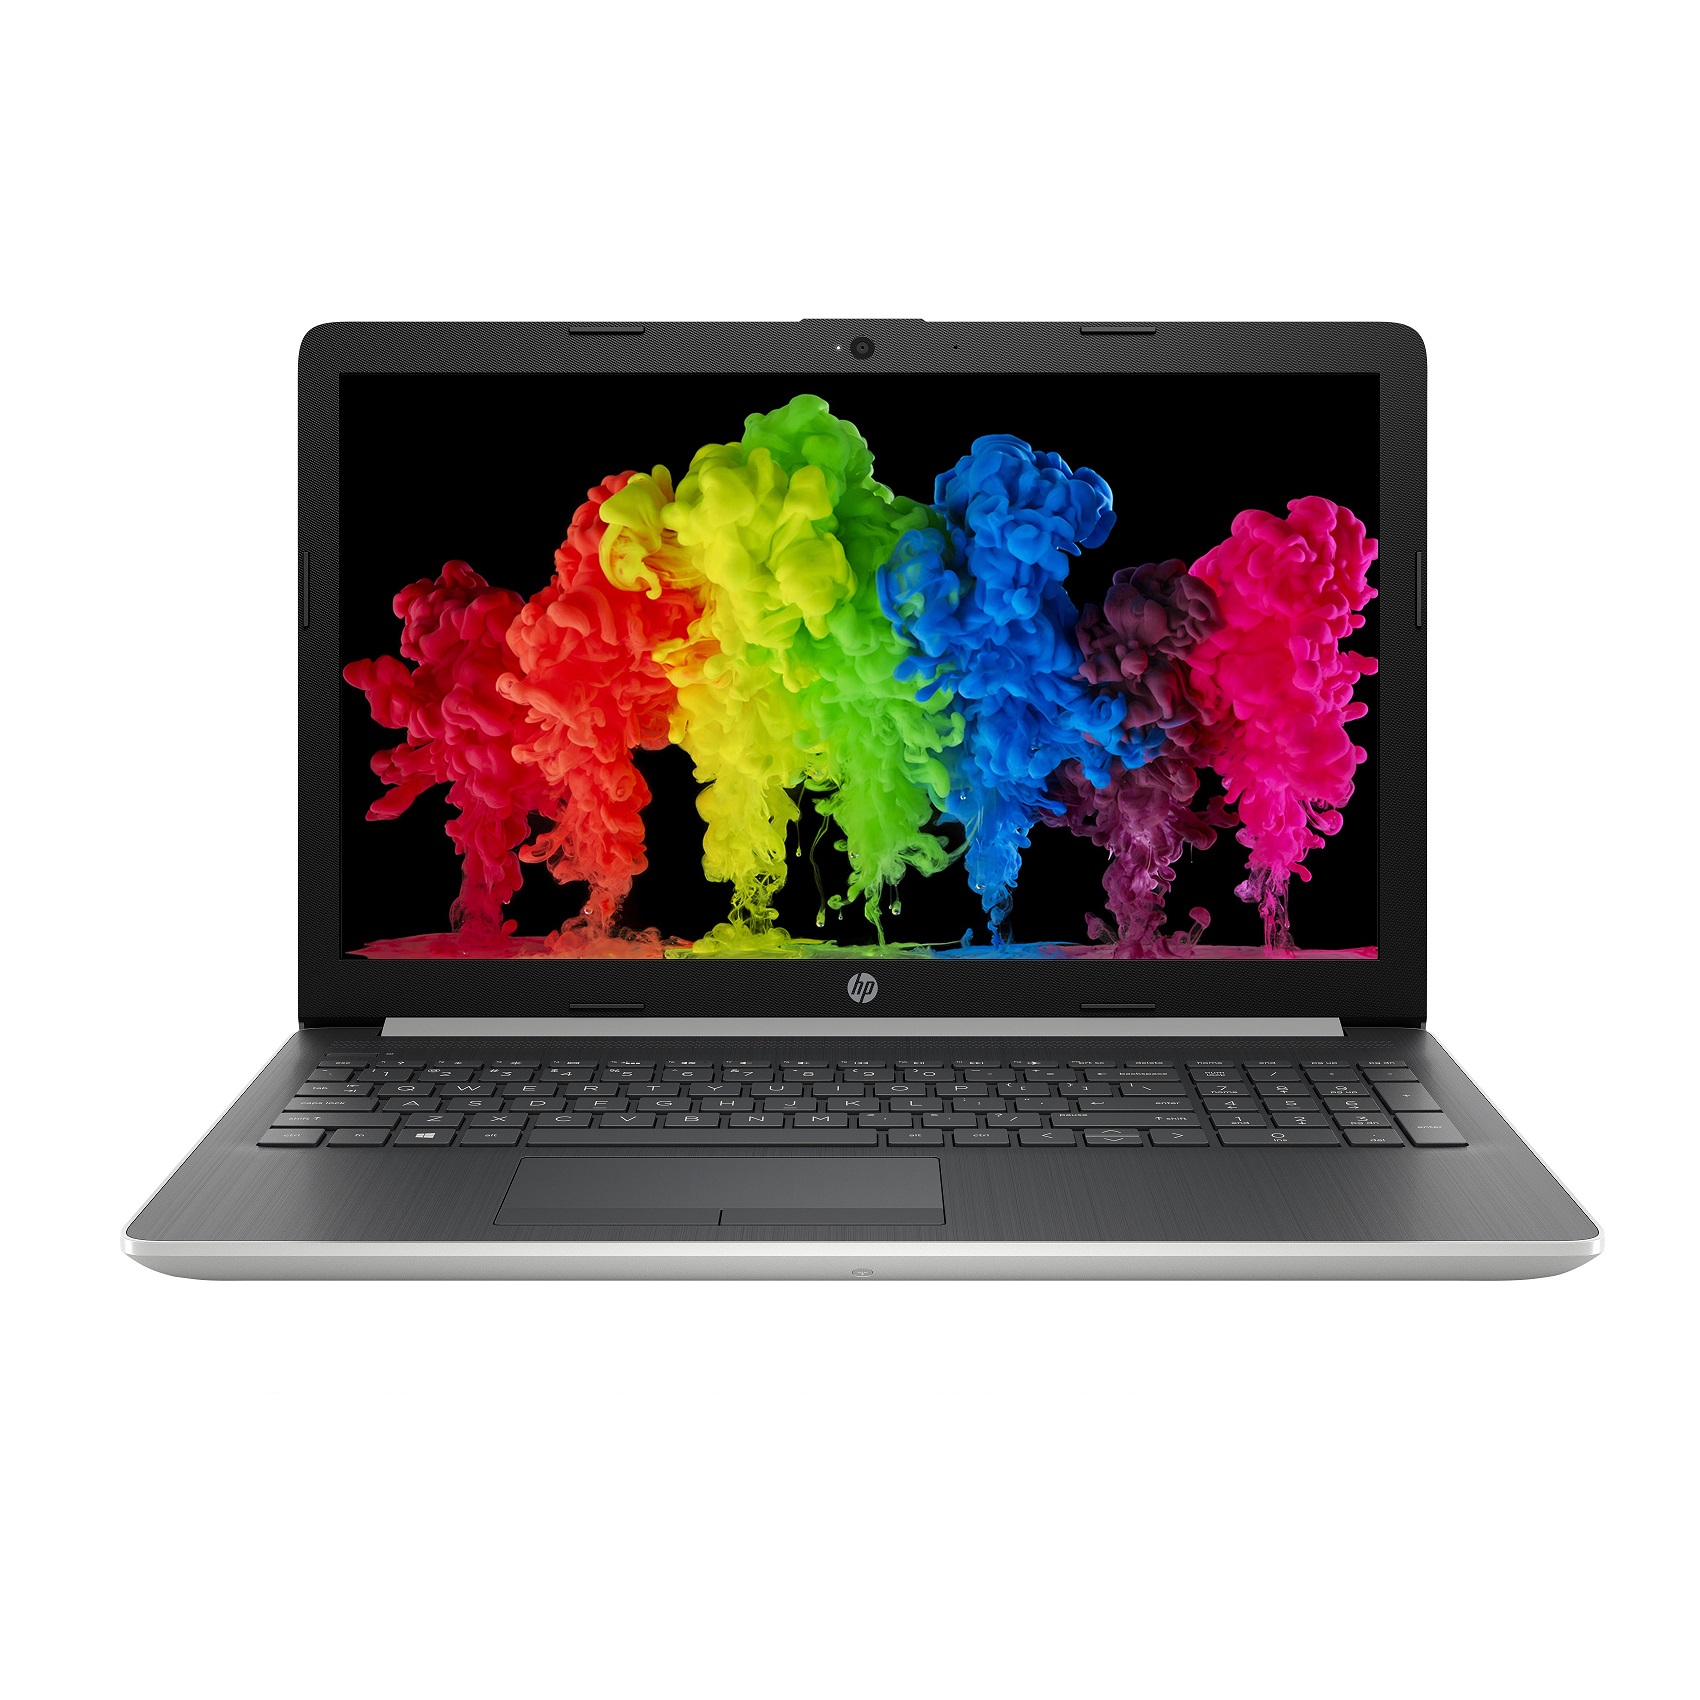 HP Laptop 15-da0016TX-Silver(i5-8250U/4G/256G+1TB/MX130-4G/Win10)